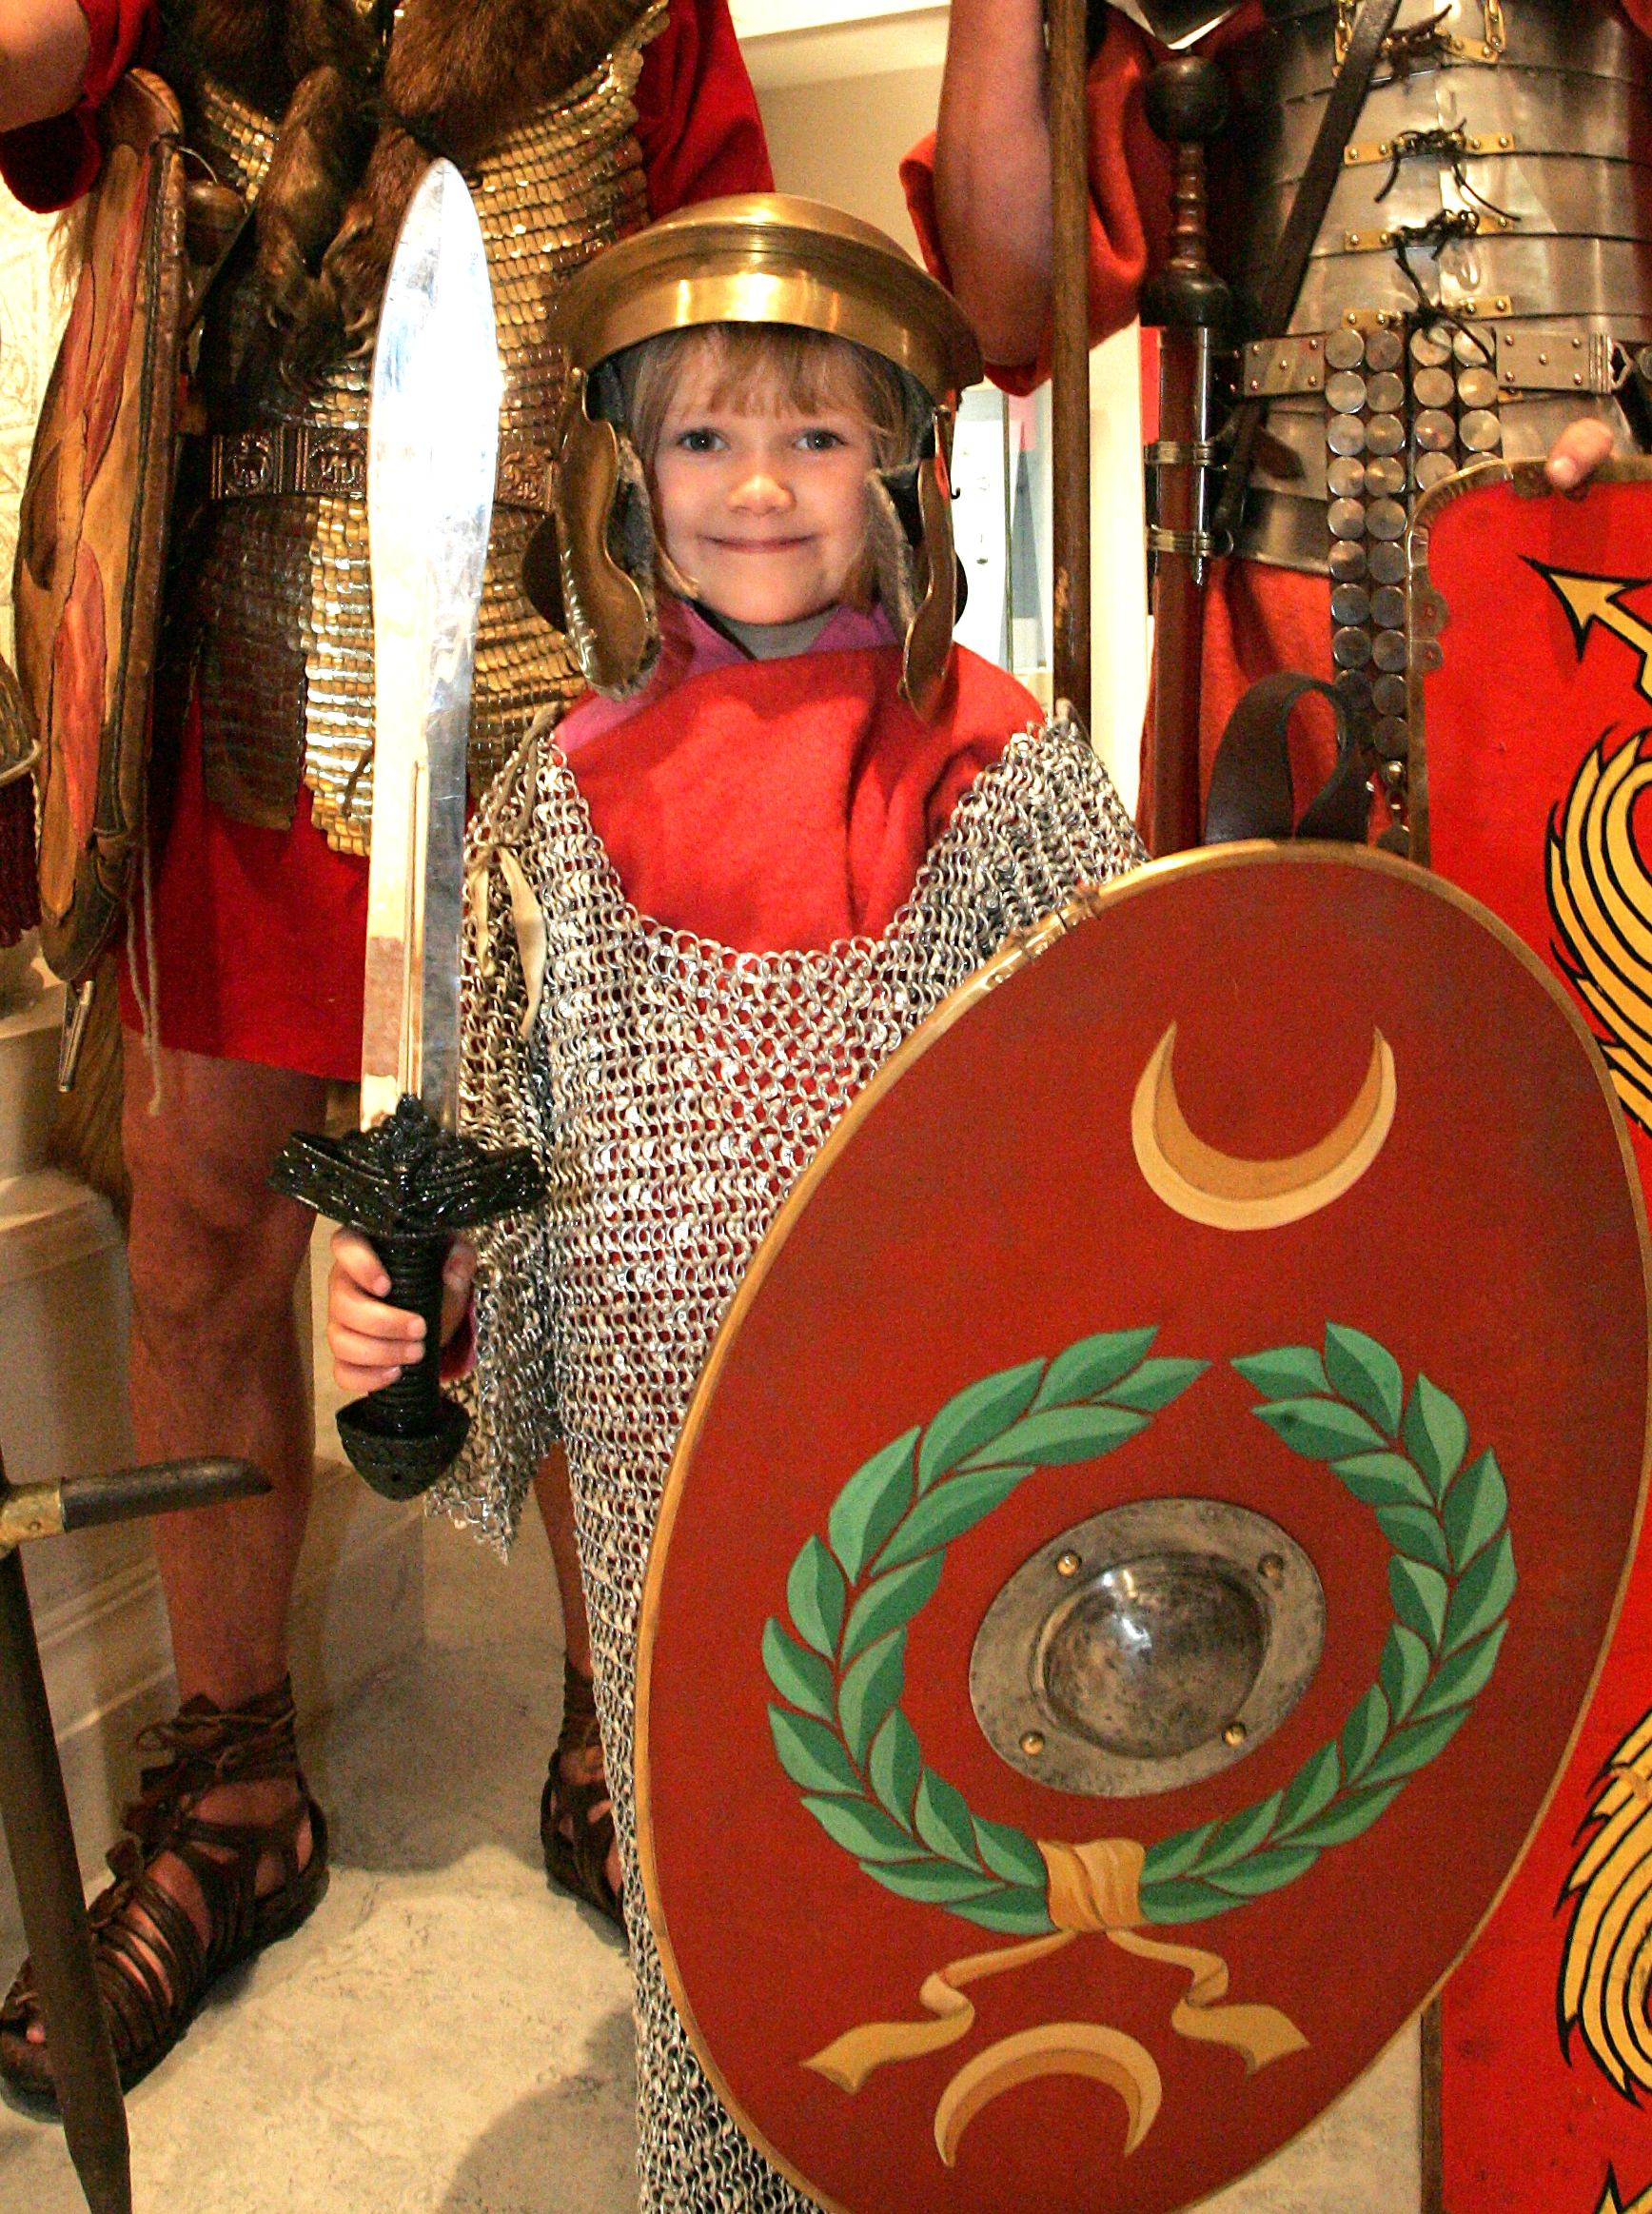 Roman Soldier on a Stick